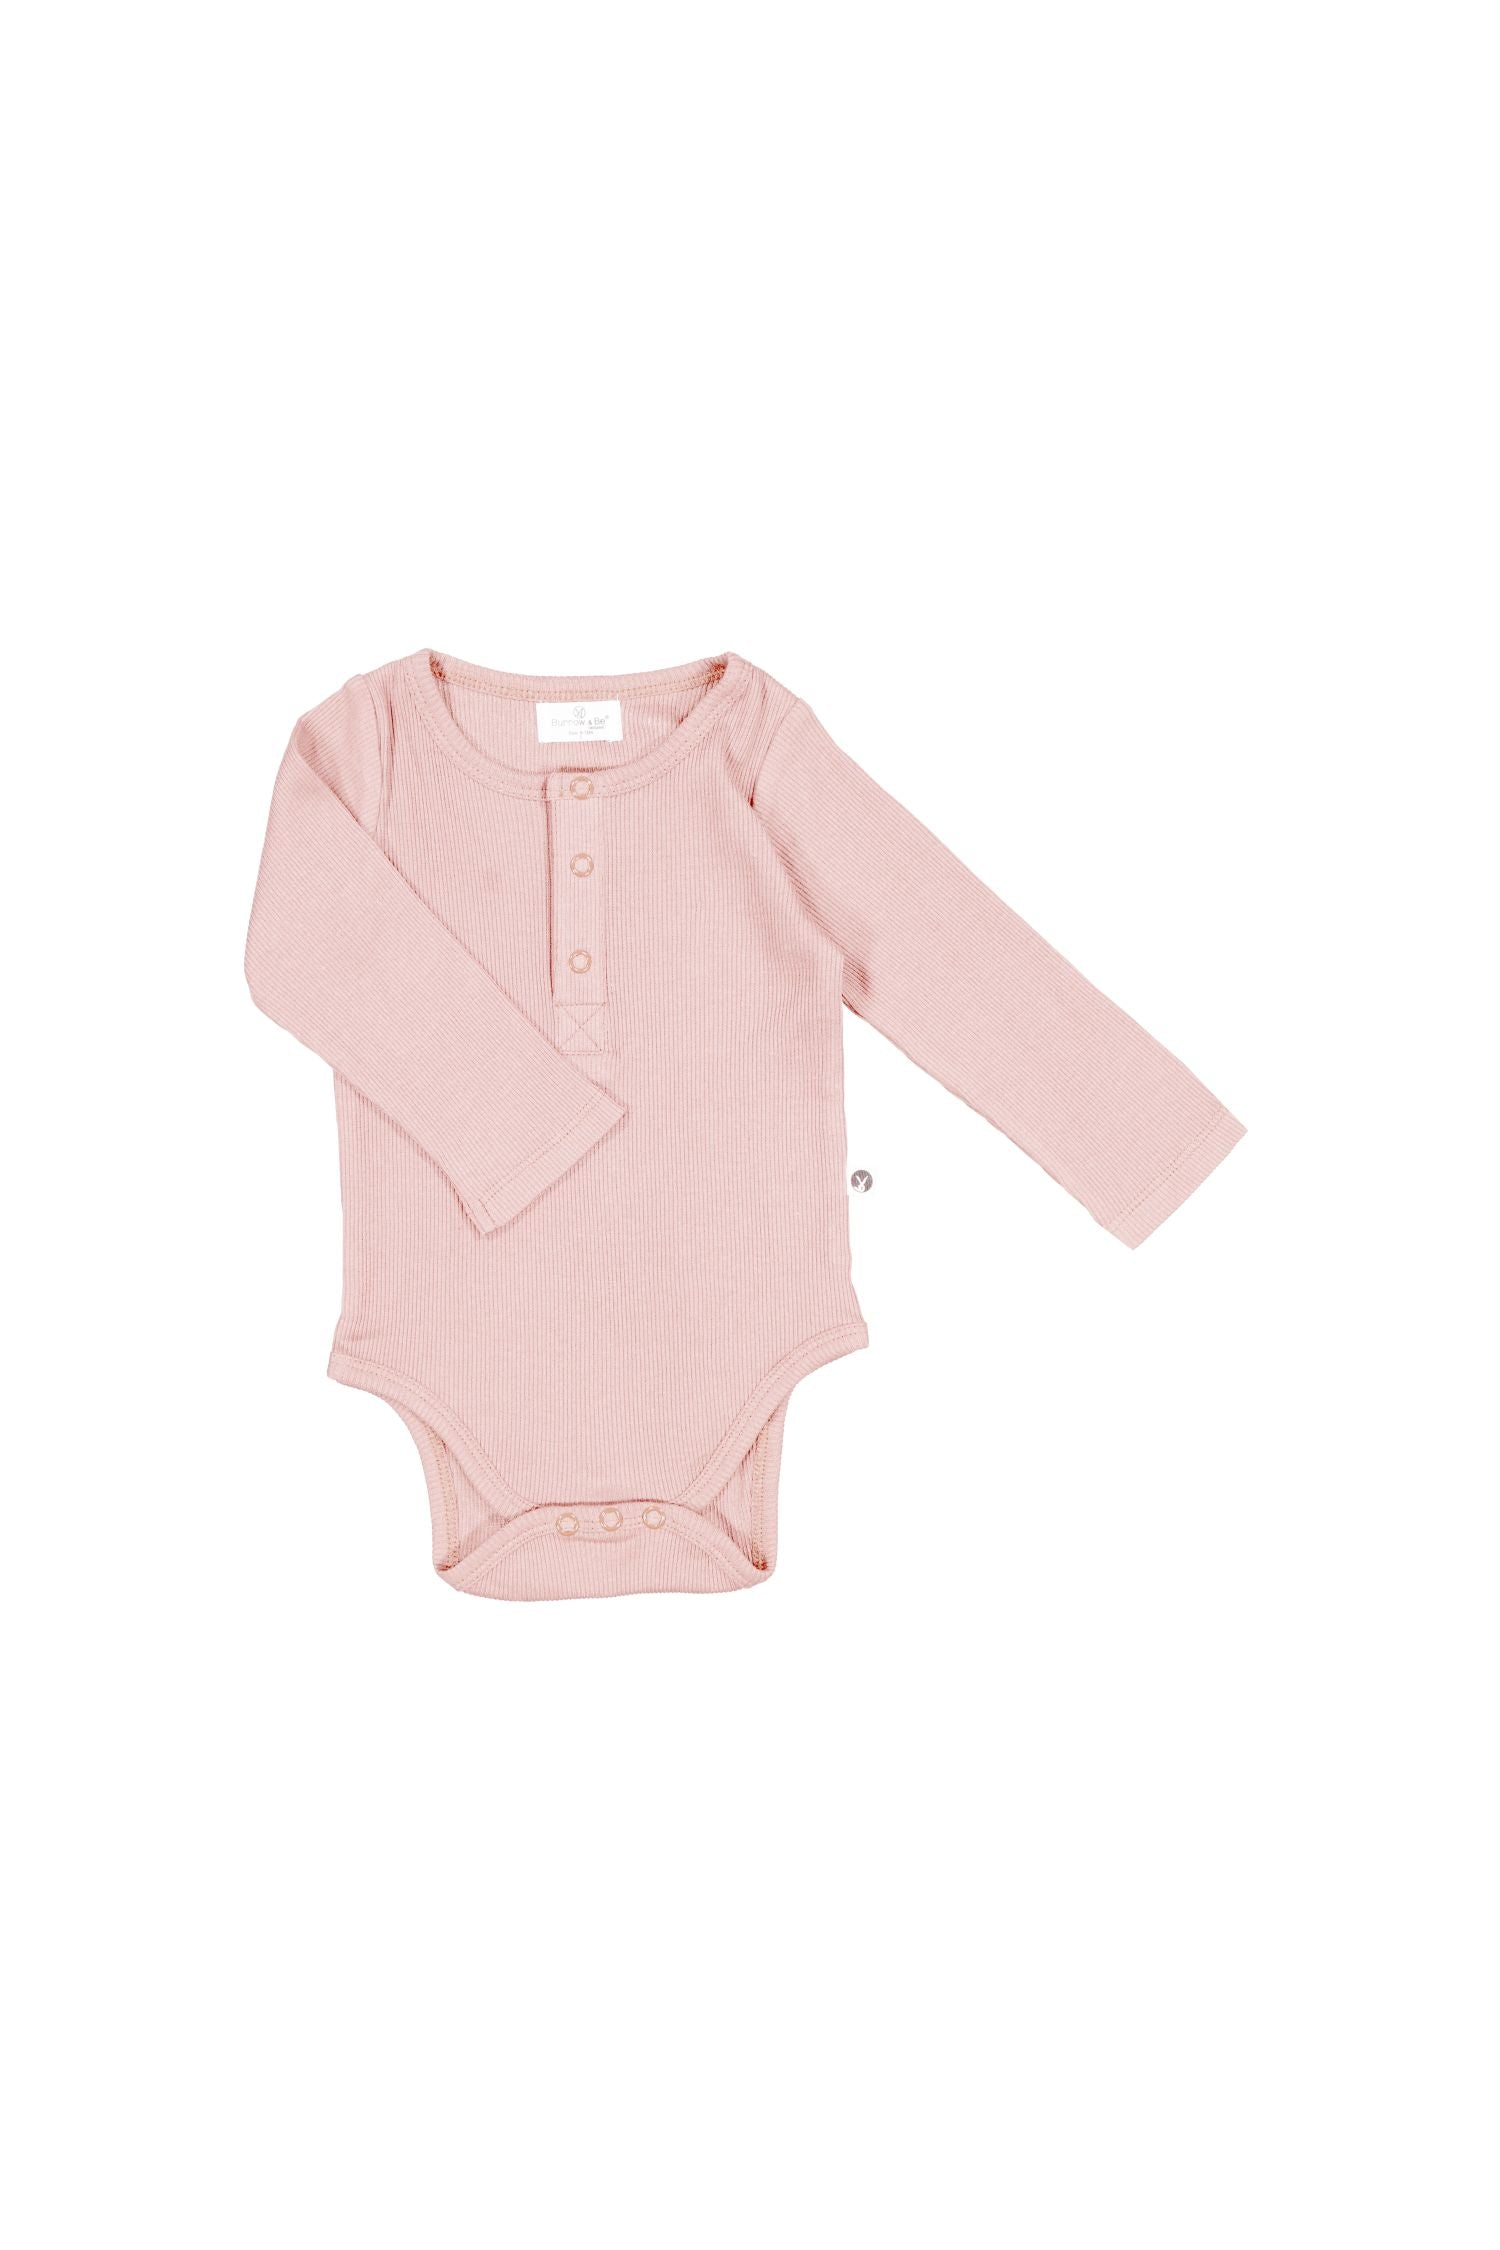 Rib Henley Body suit - Dusty rose